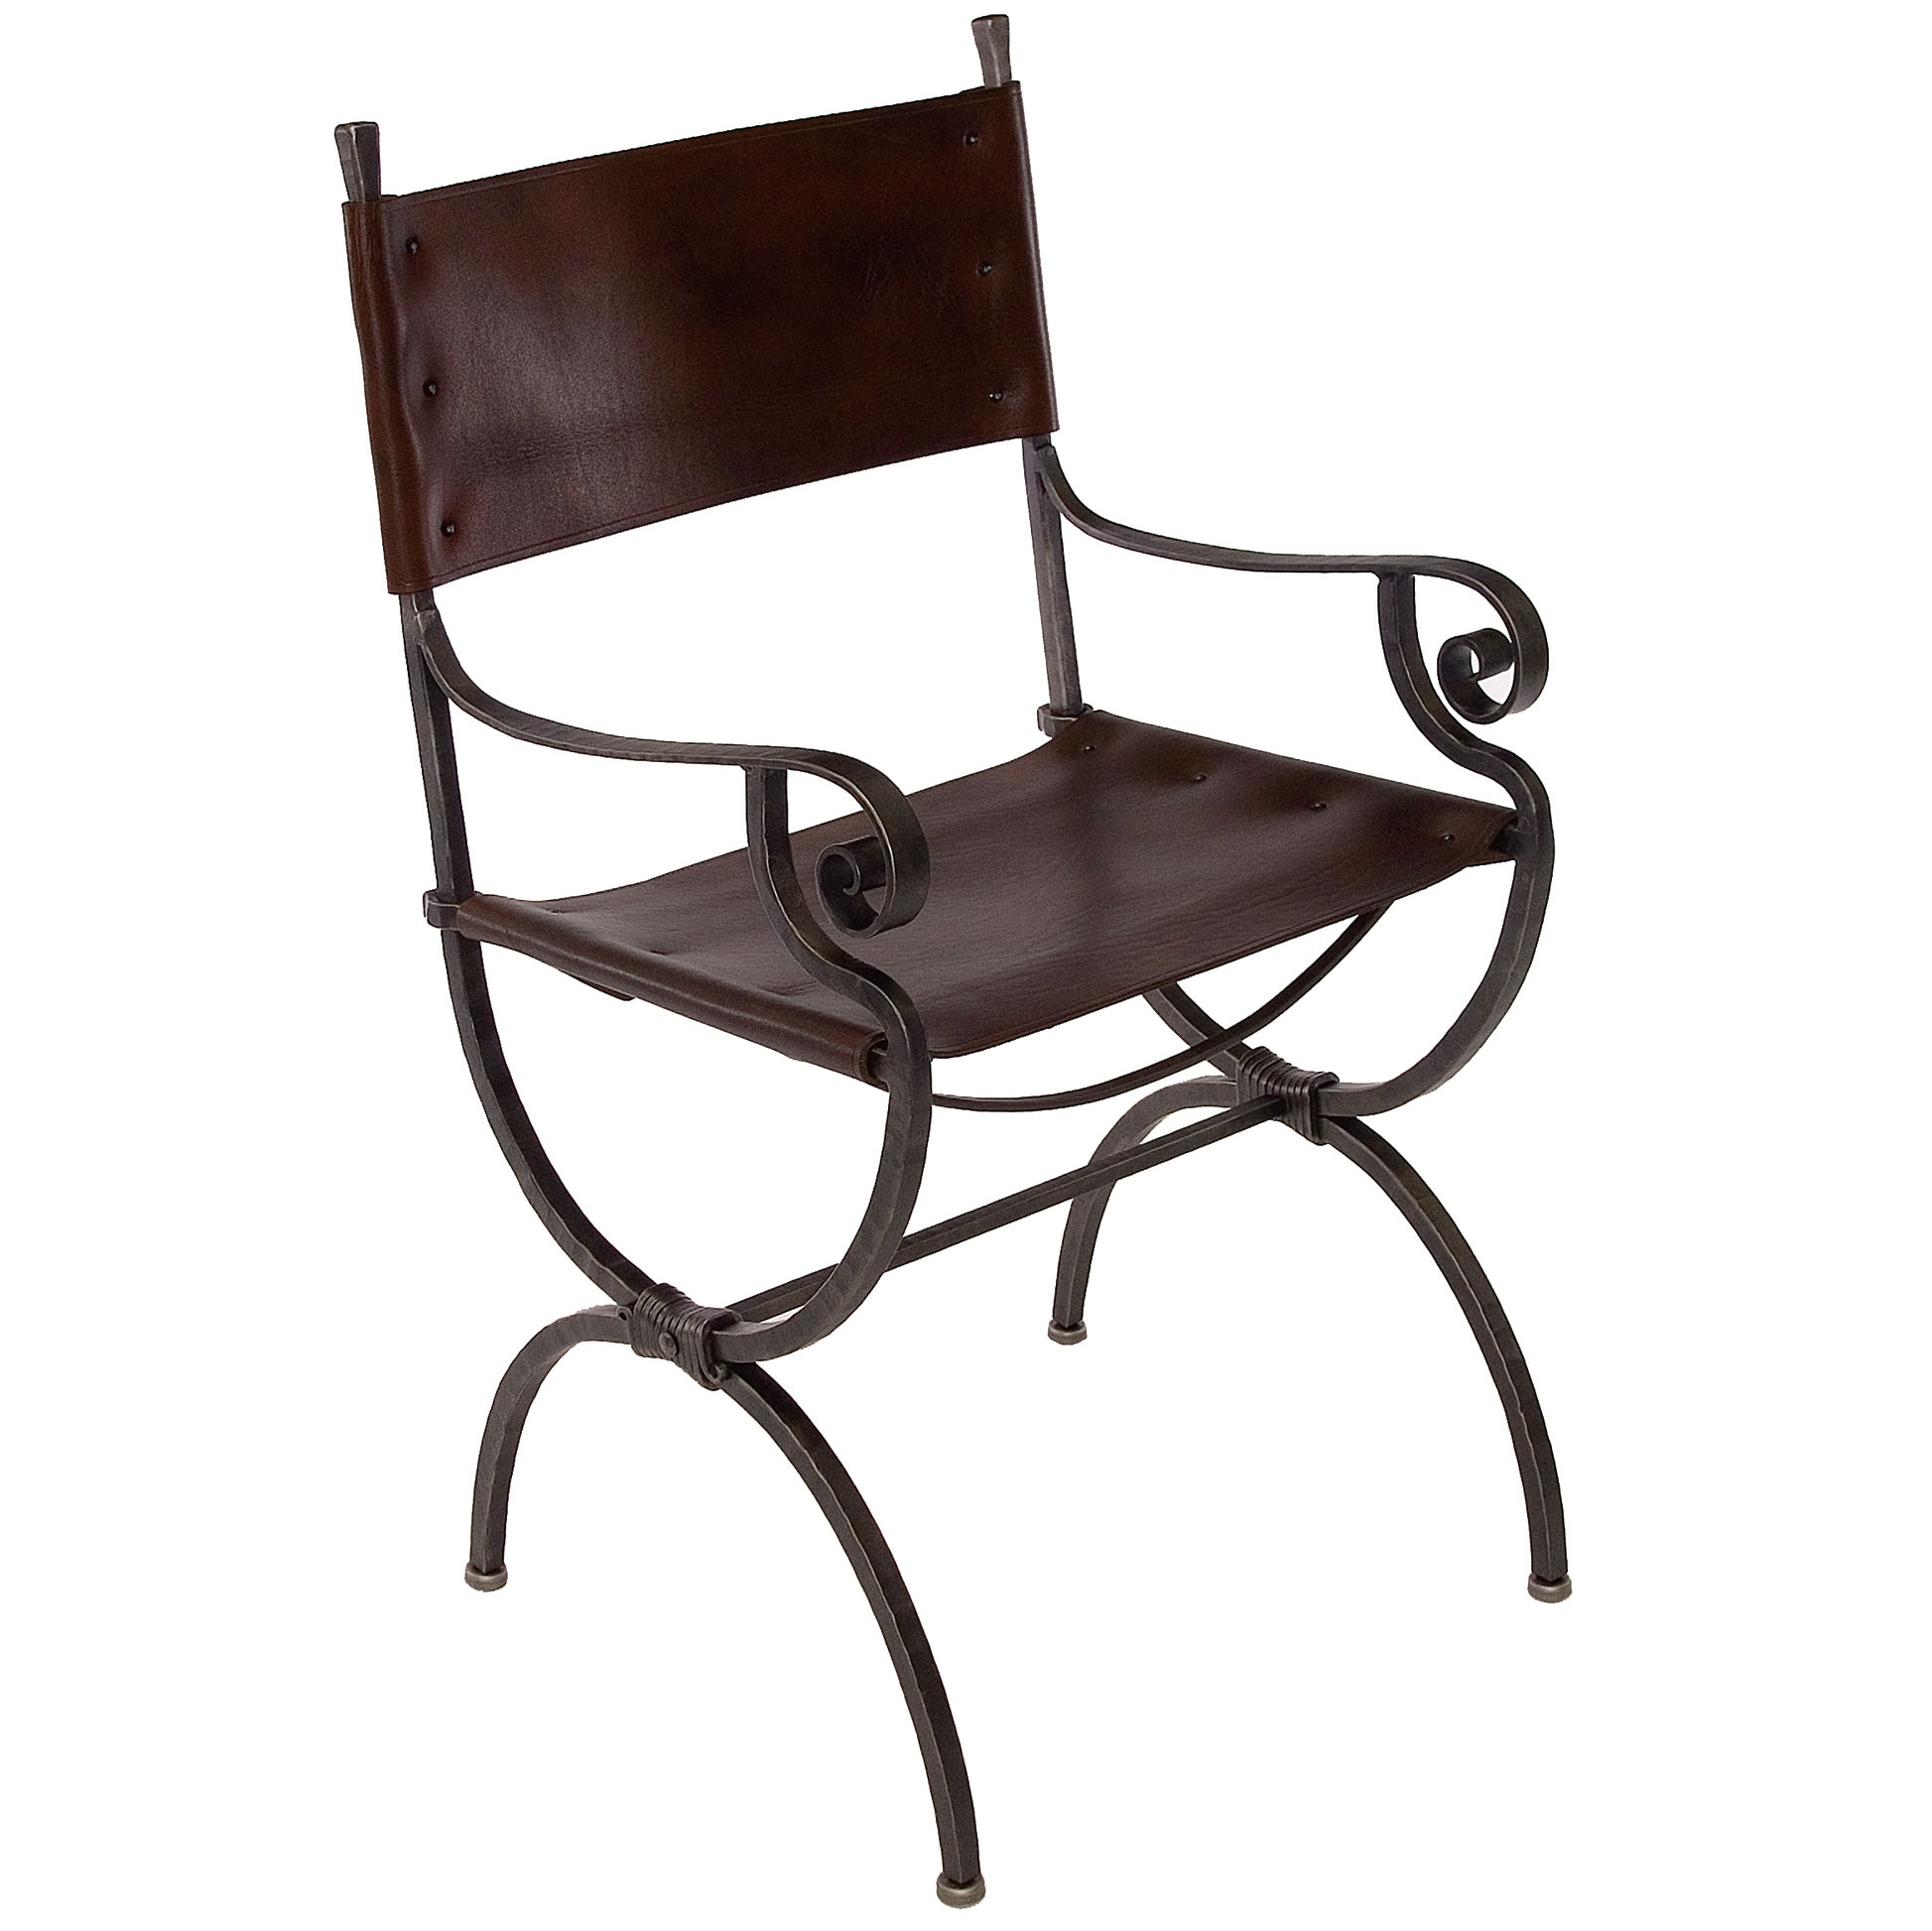 Brilliant Legacy Dining Chair With Arms By Charleston Forge Caraccident5 Cool Chair Designs And Ideas Caraccident5Info